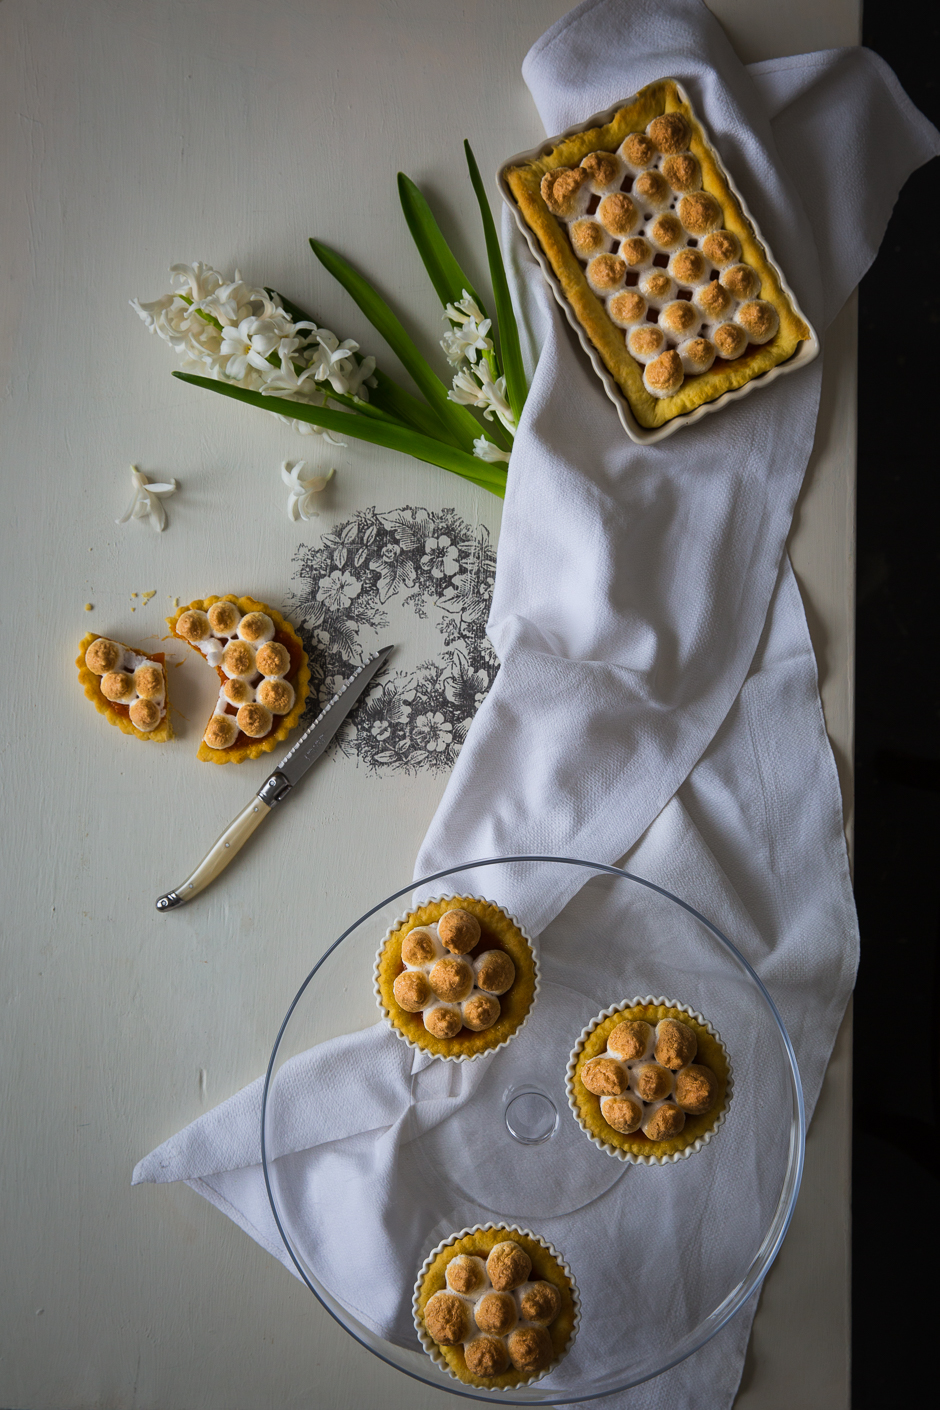 woman's whim cake from the Taste of Memories Hungarian country kitchen www.tasteofmemories.com